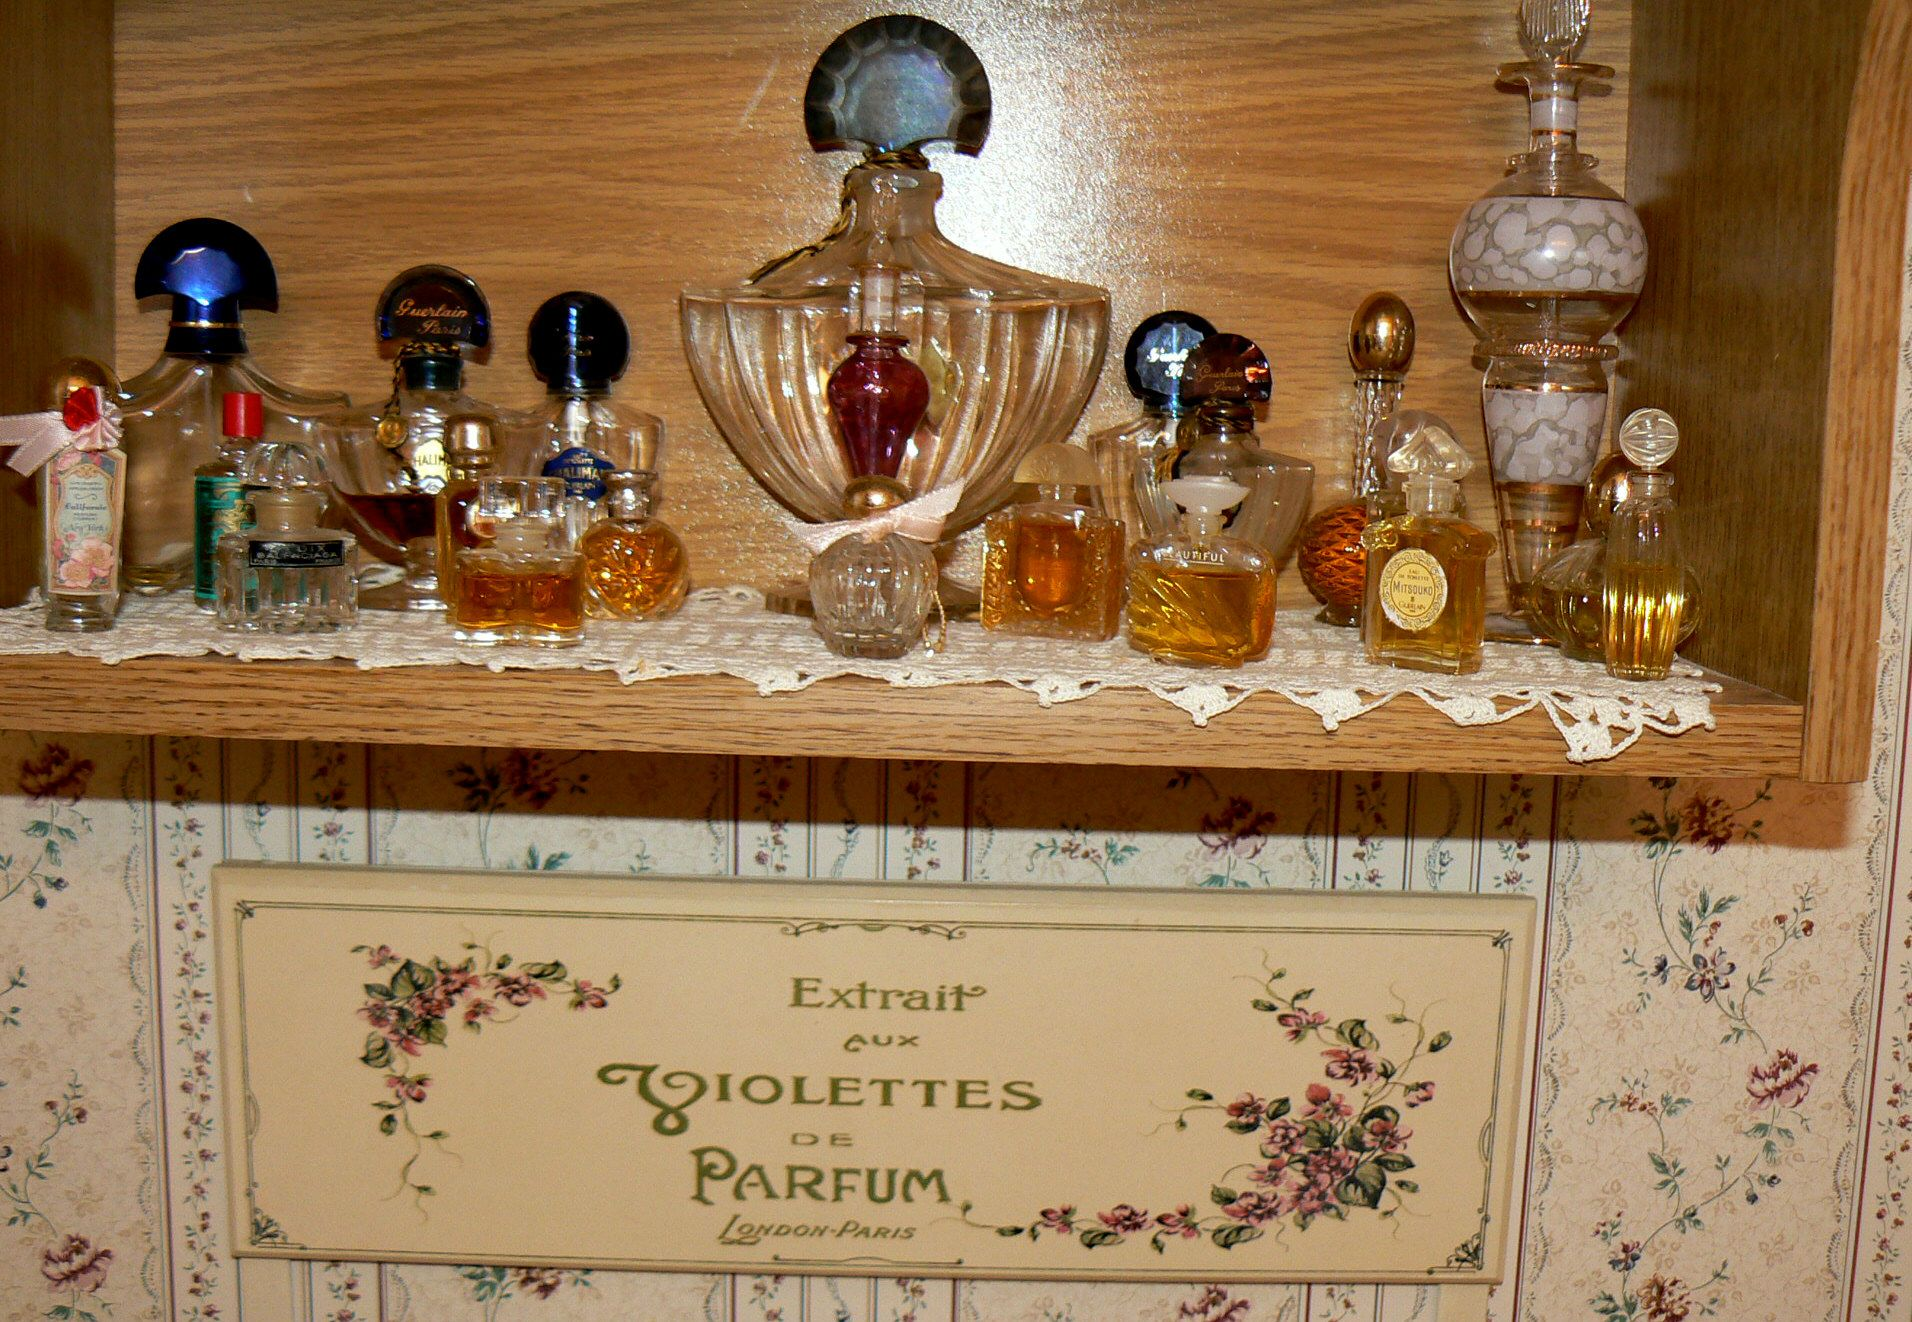 My perfume bottle collection